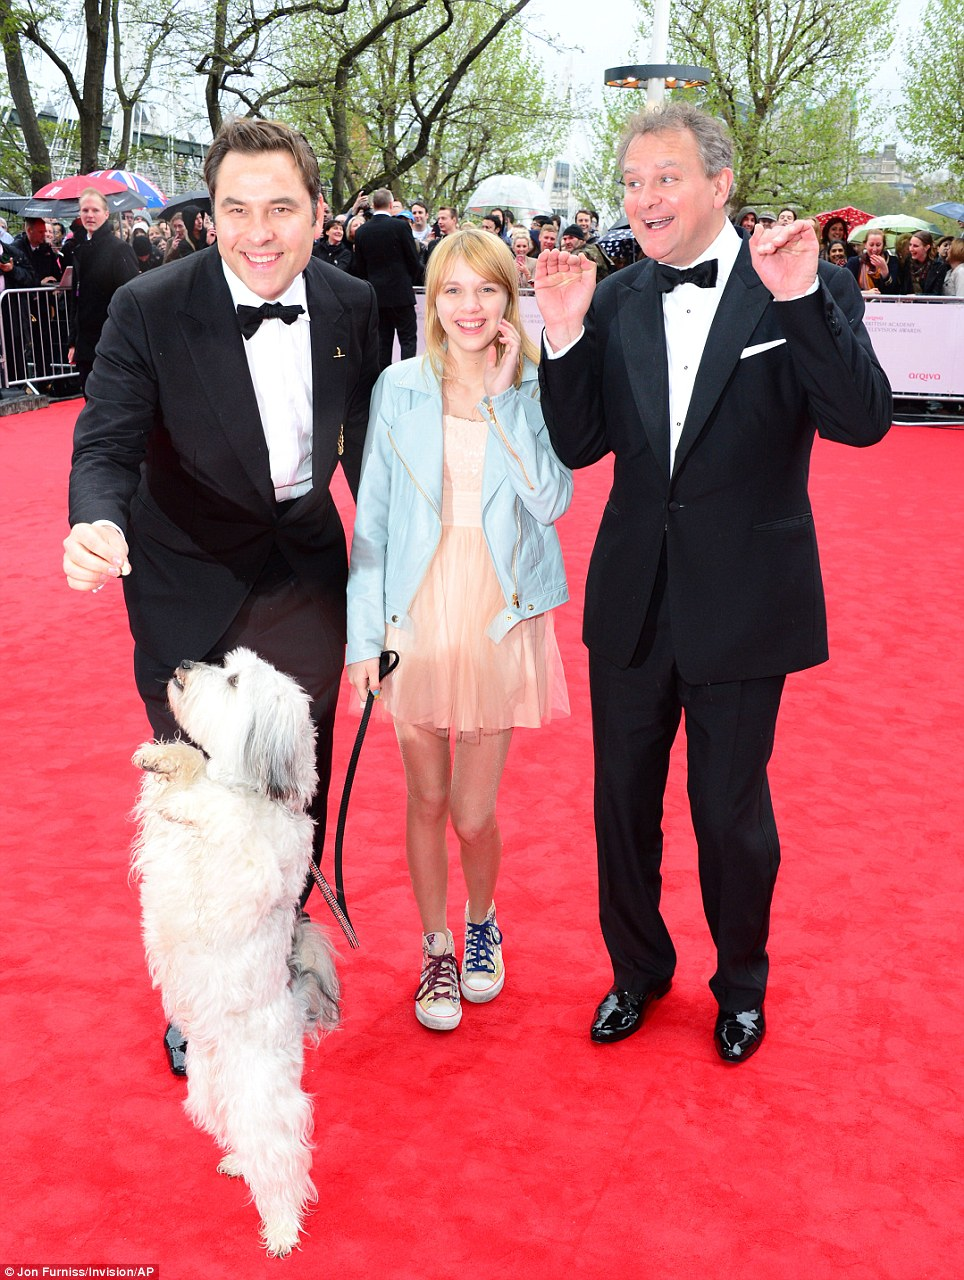 Got Talent: David Walliams, Pudsey and Hugh Bonneville larked around on the red carpet ahead of the BAFTA TV awards